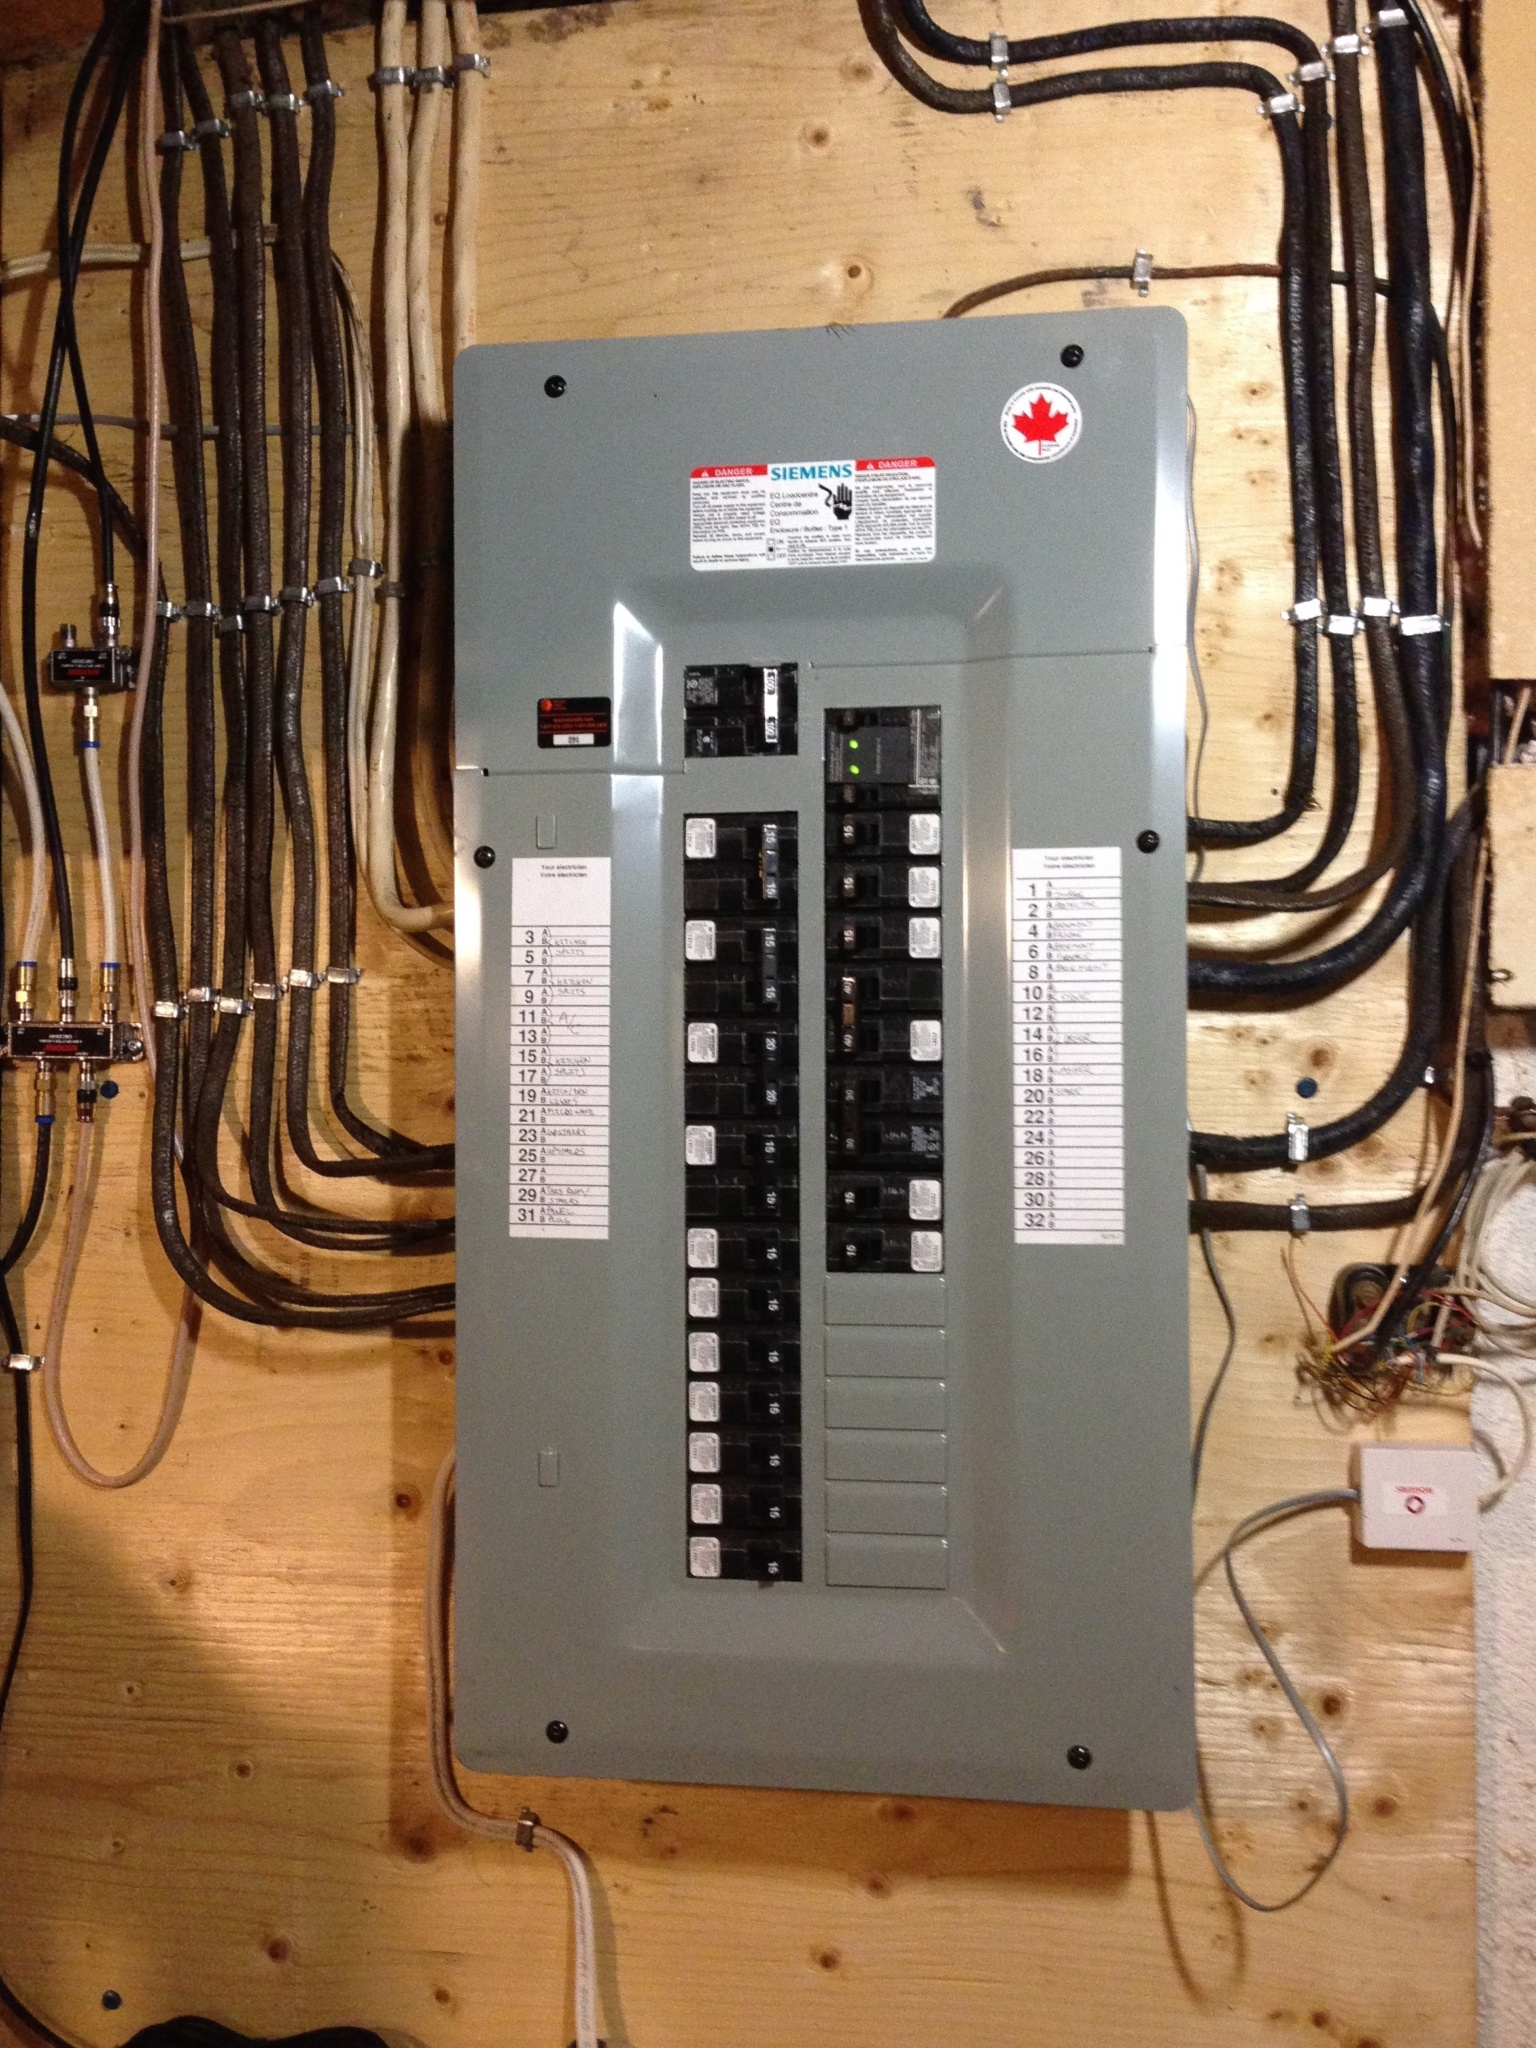 60 Amp Breaker Panel Wiring Electrical Diagrams Old Square D Fuse Box Wadsworth Trusted Diagram Generator